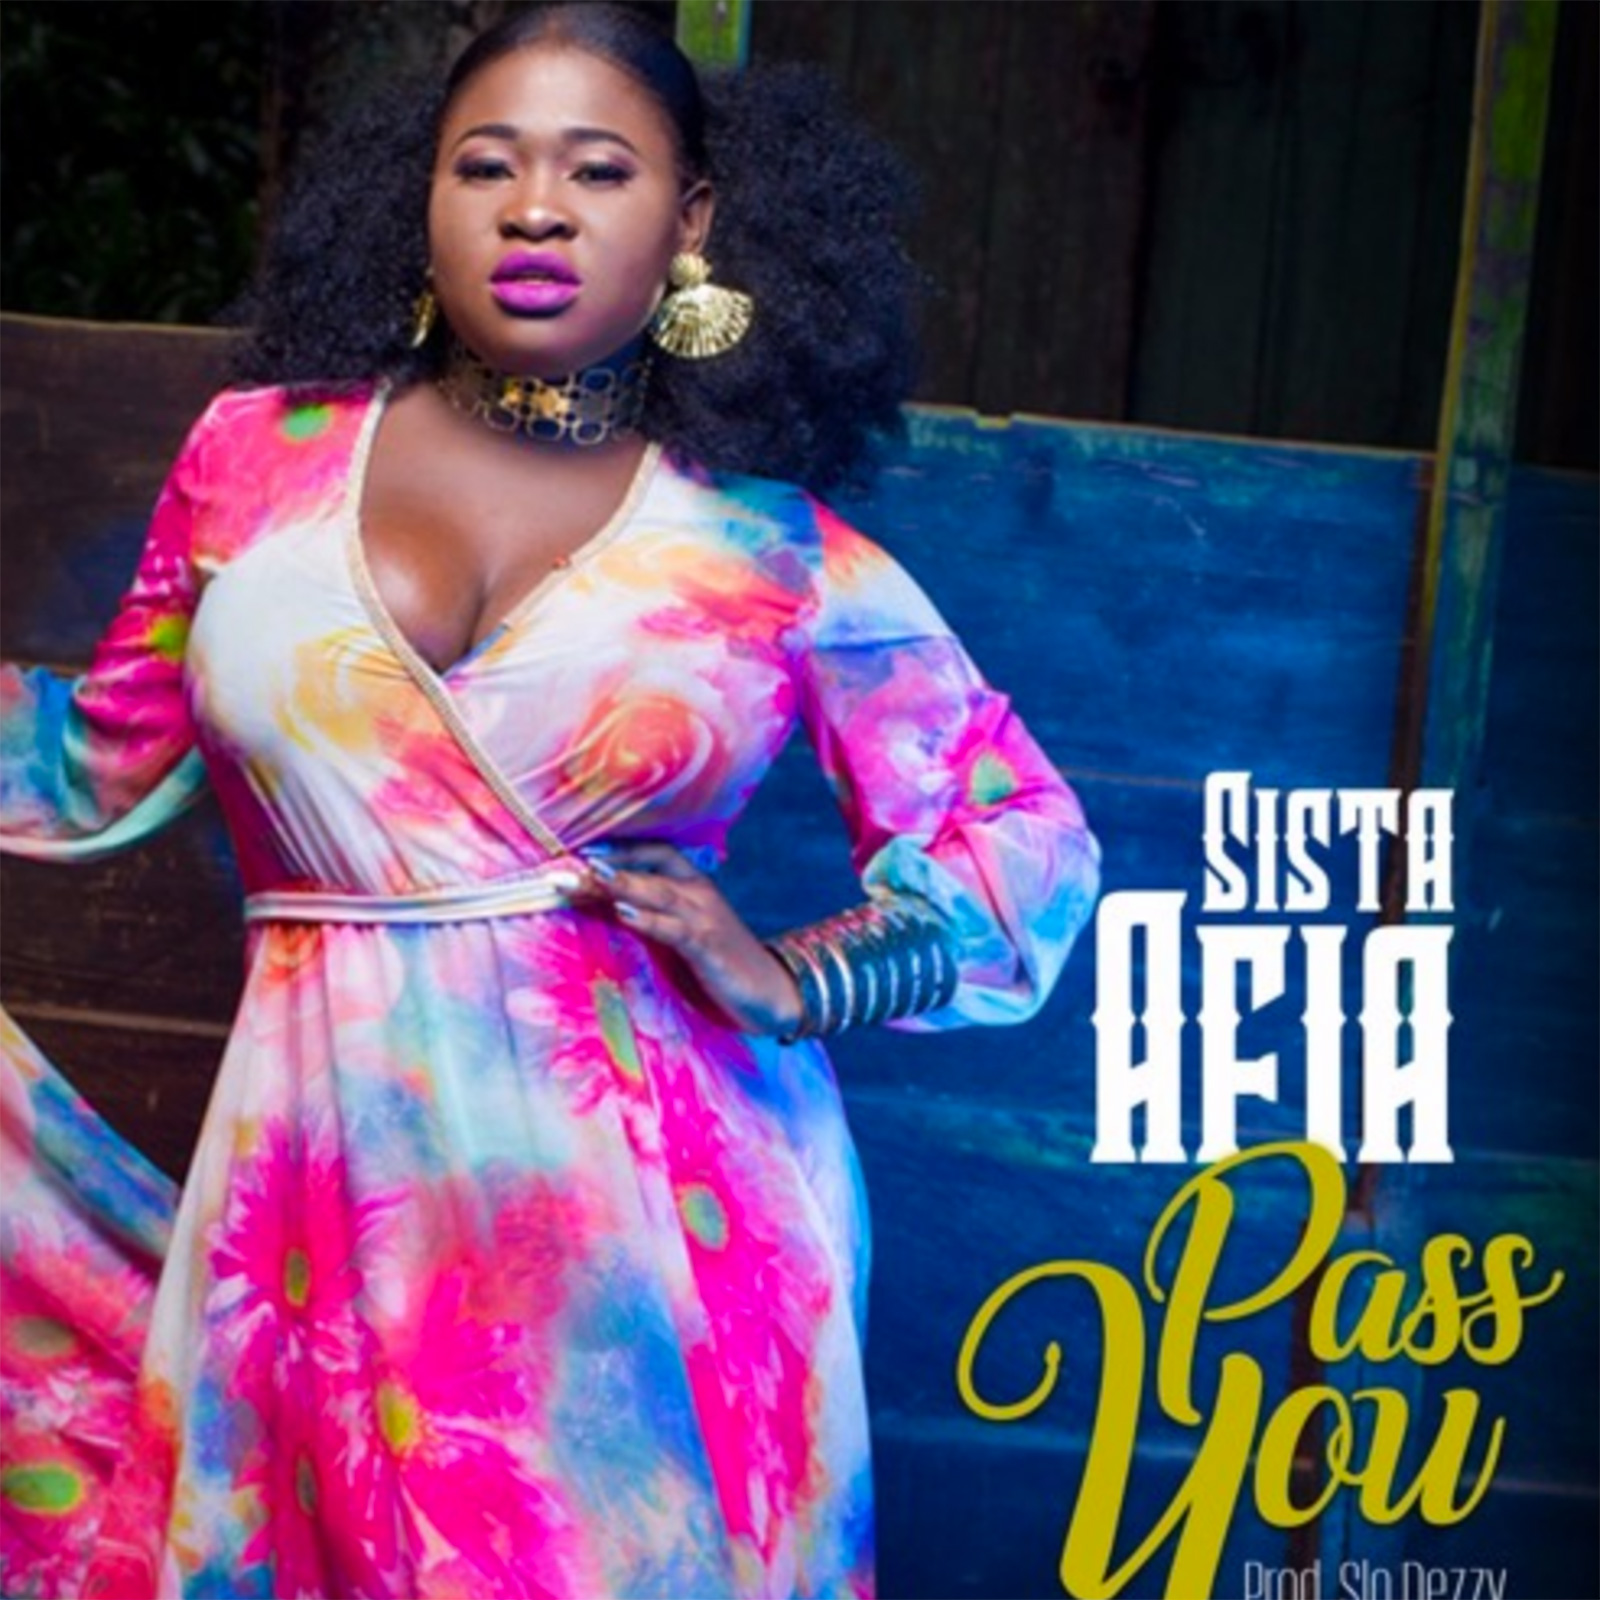 Pass You by Sister Afia